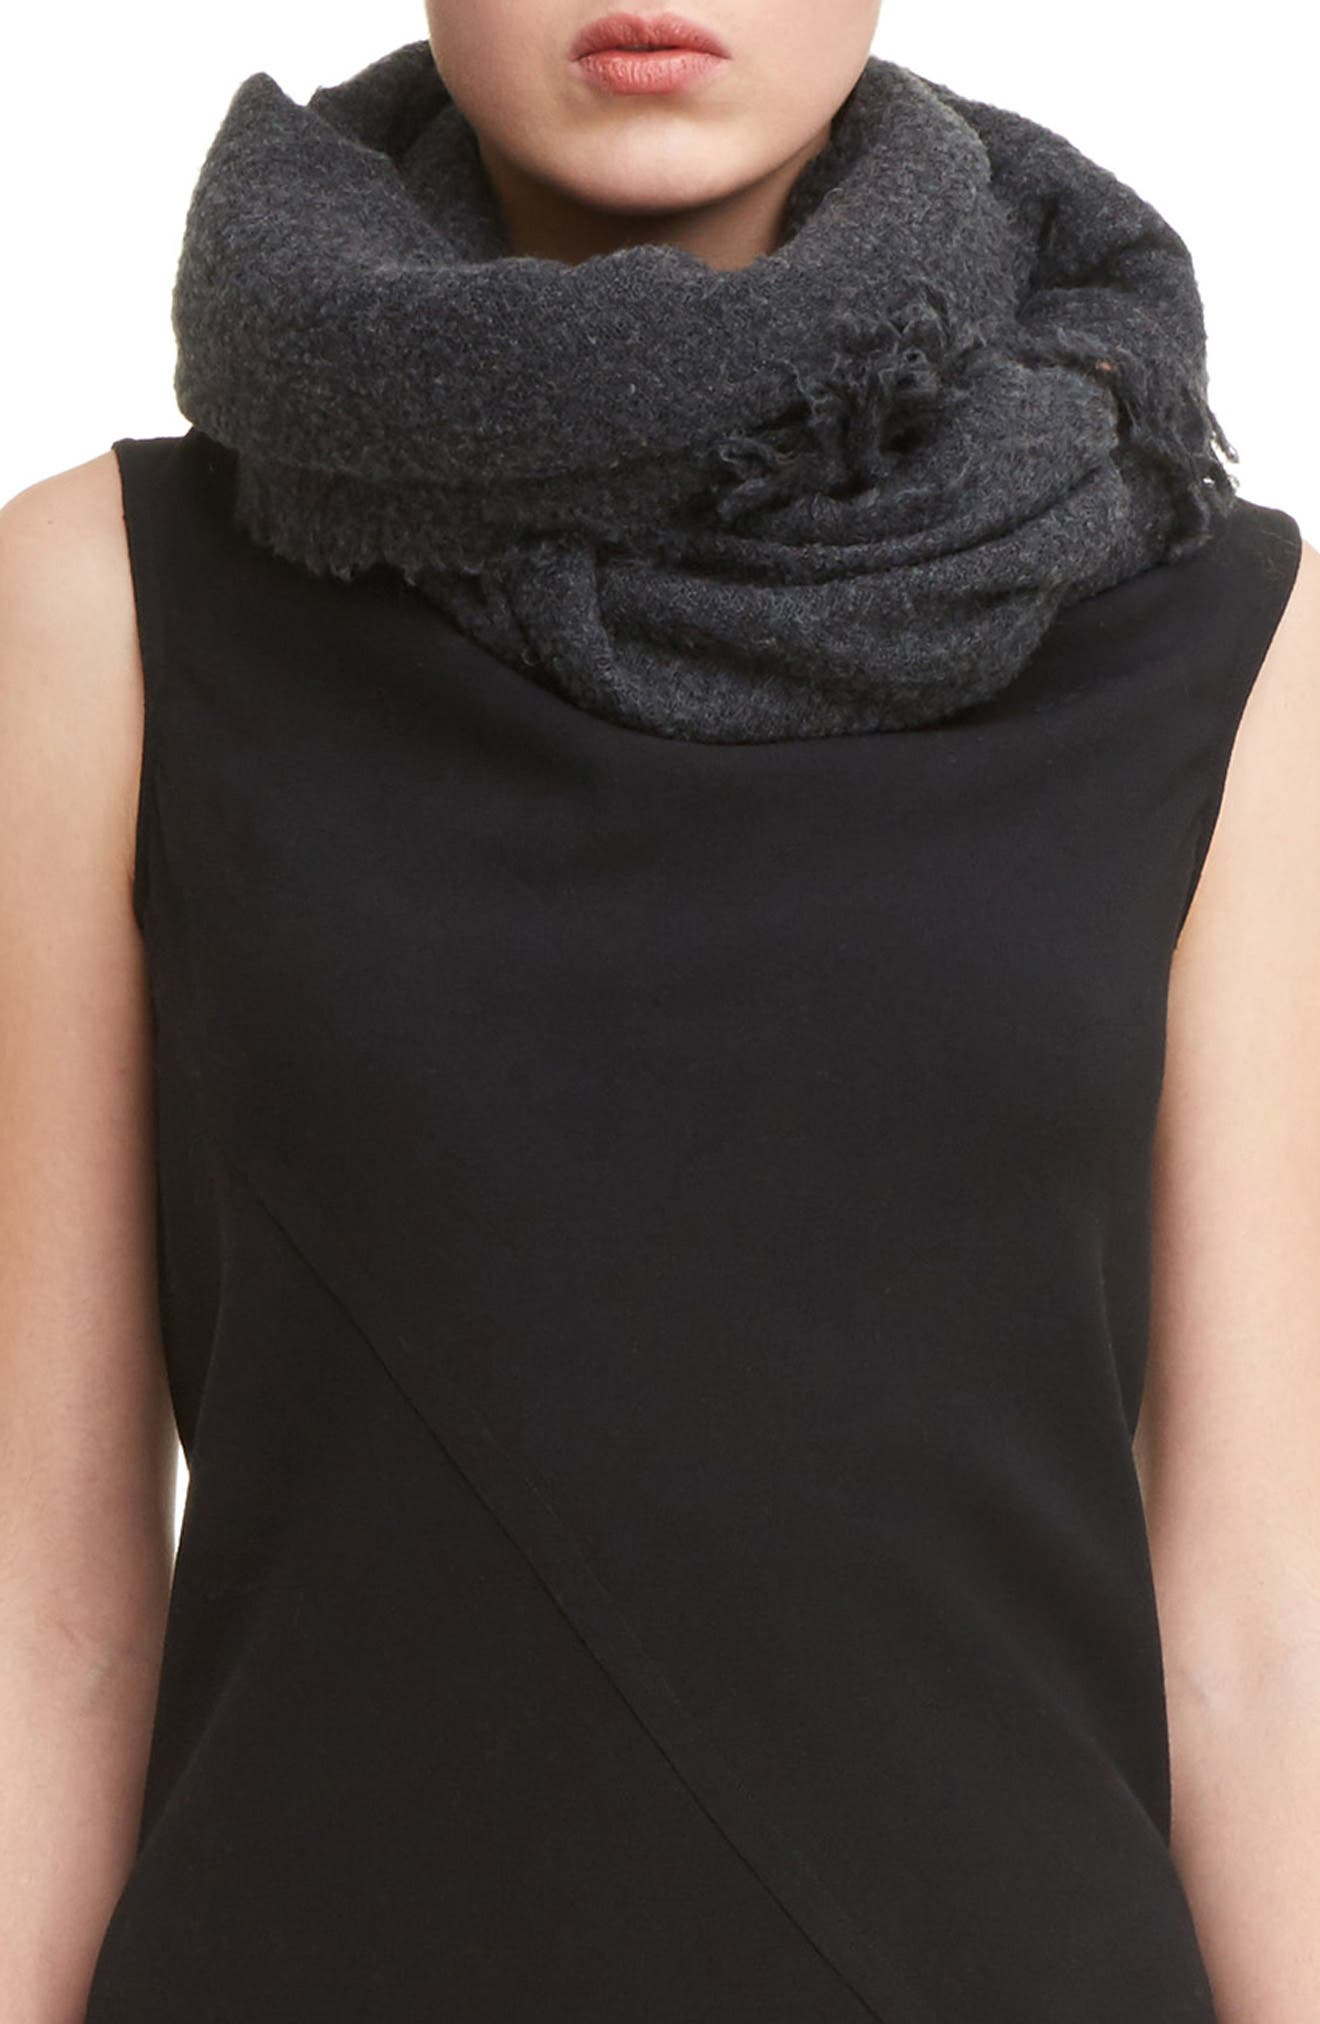 Wool Blend Scarf,                             Main thumbnail 1, color,                             088